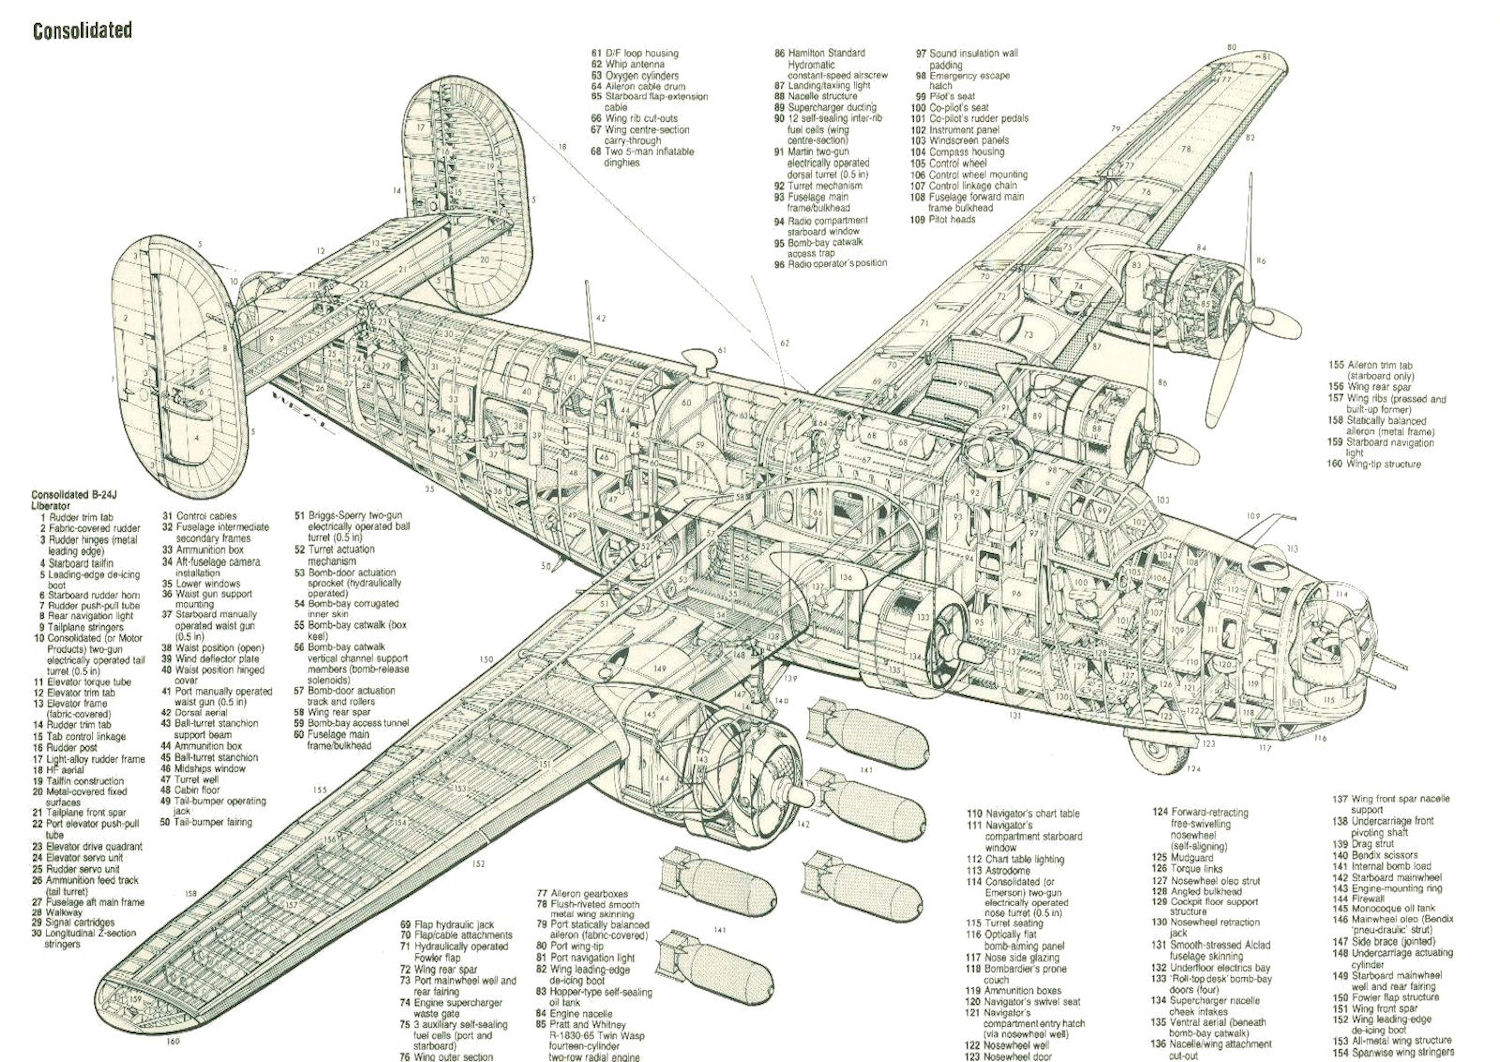 458th ardment Group H - The B-24 Liberator